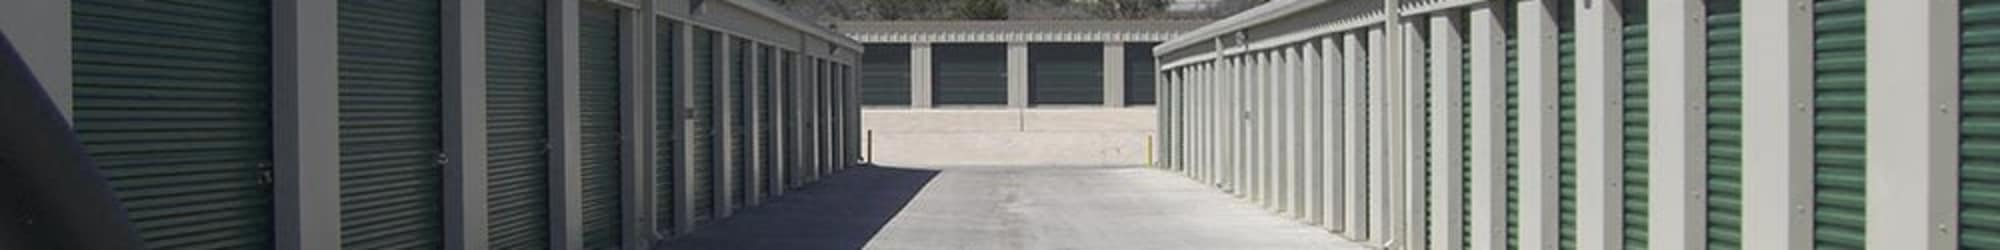 Boat & RV storage at Tri Star Self Storage - Bosque in Waco, Texas